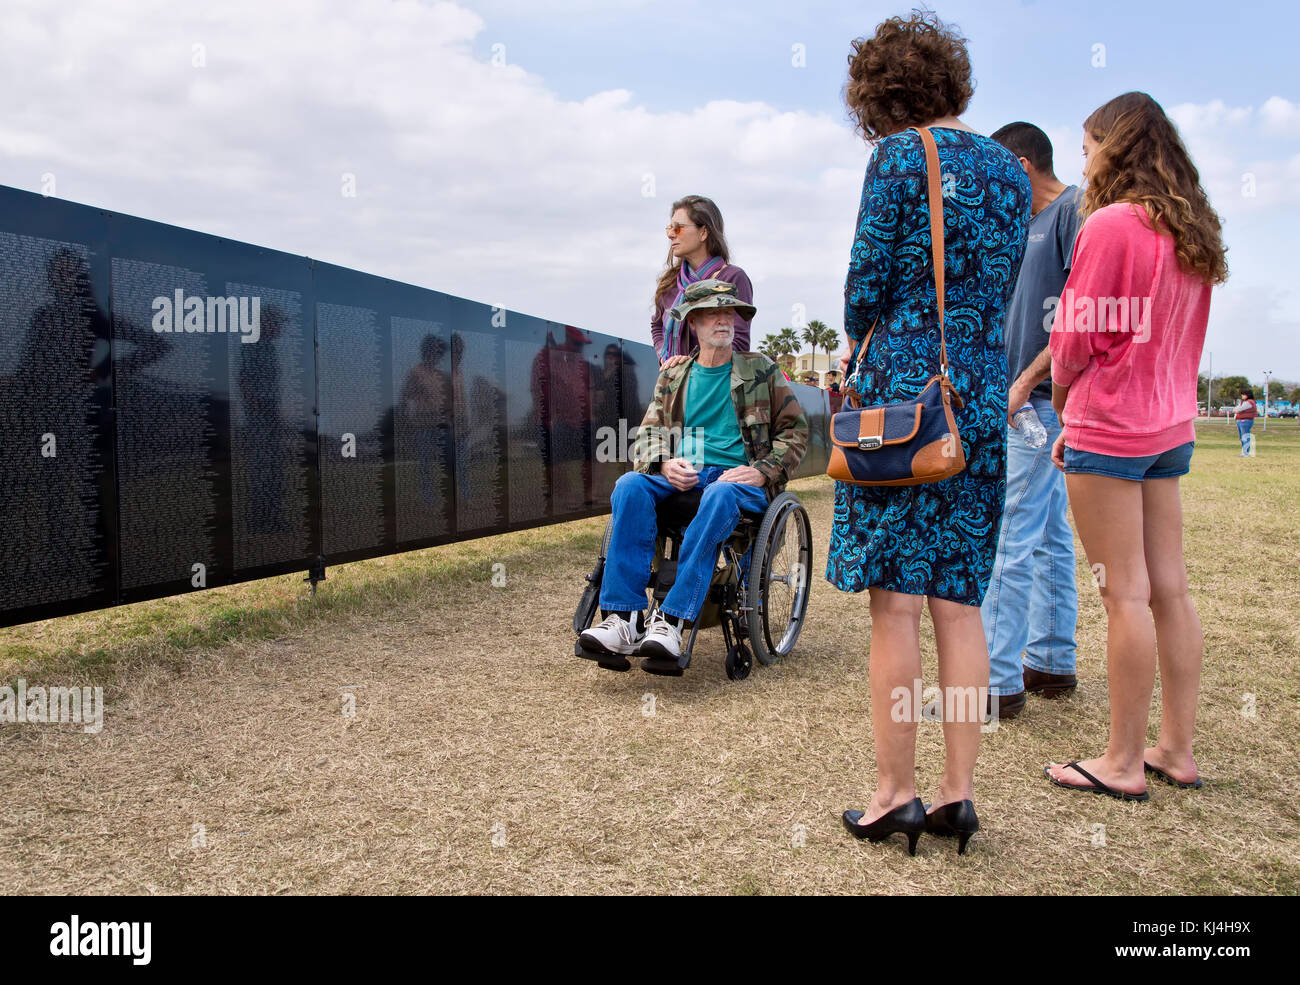 Vietnam war veteran visiting Vietnam Memorial Traveling Wall, Rockport, Texas, United States. - Stock Image